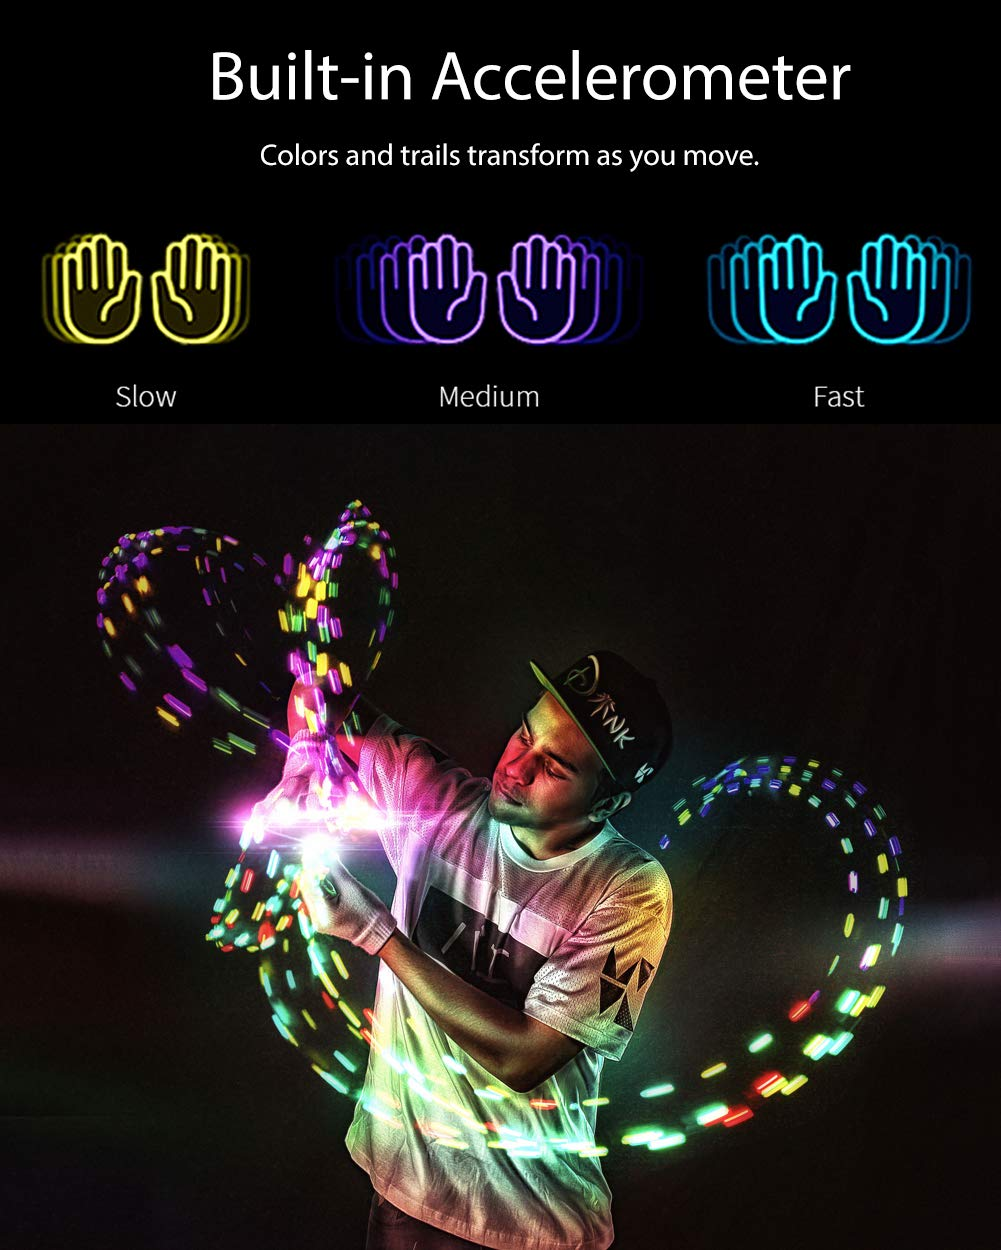 EmazingLights Elite Element Light Up Glove Set - Flashing Finger Light LED Gloves for Raves & Light Shows Featured on Shark Tank by EmazingLights (Image #5)